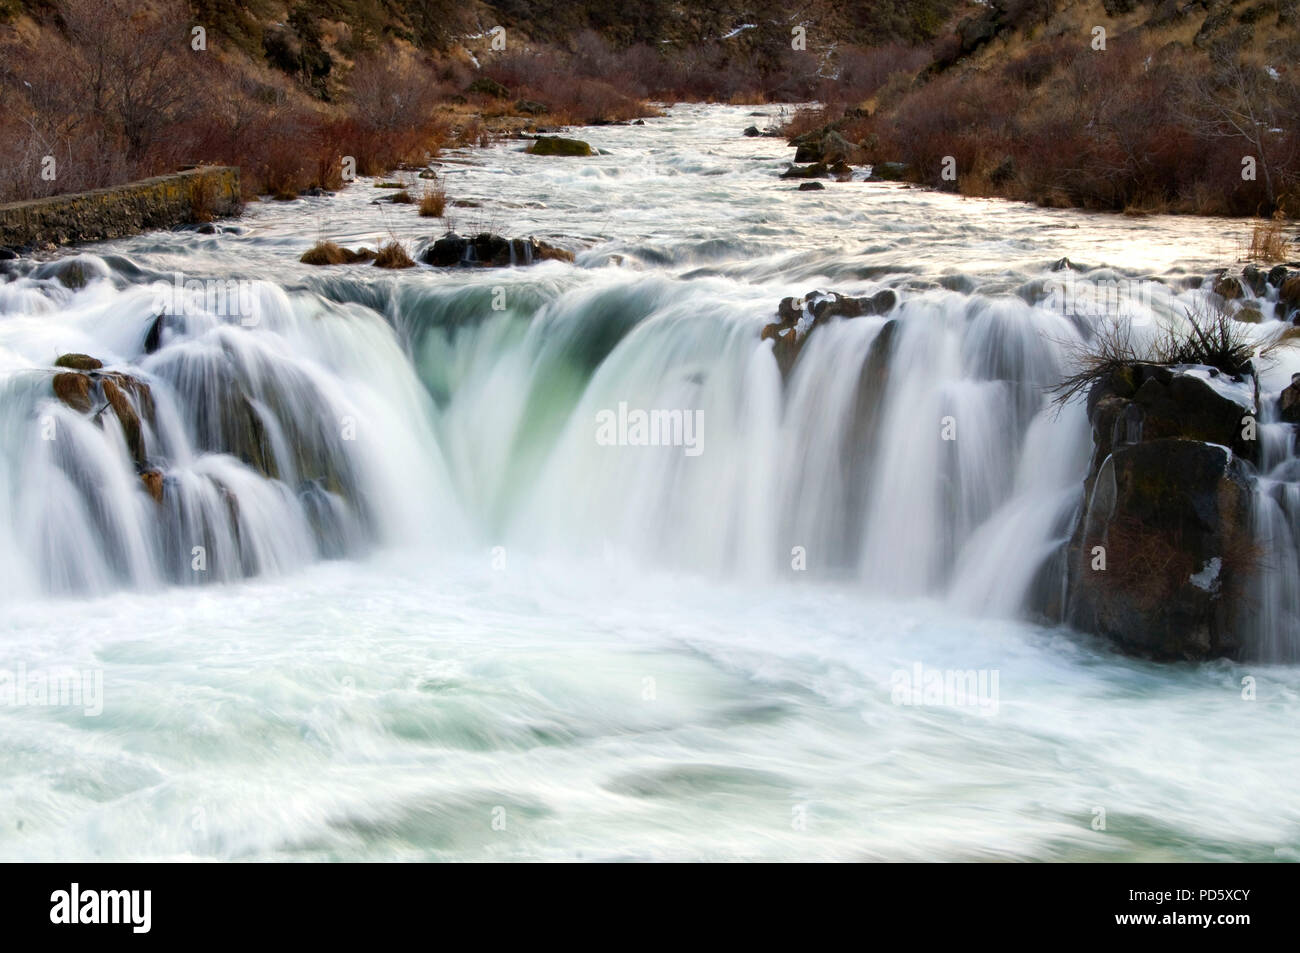 Steelhead Falls, Steelhead Falls Wilderness Study Area, Deschutes Wild and Scenic River, Prineville District Bureau of Land Management, Oregon - Stock Image